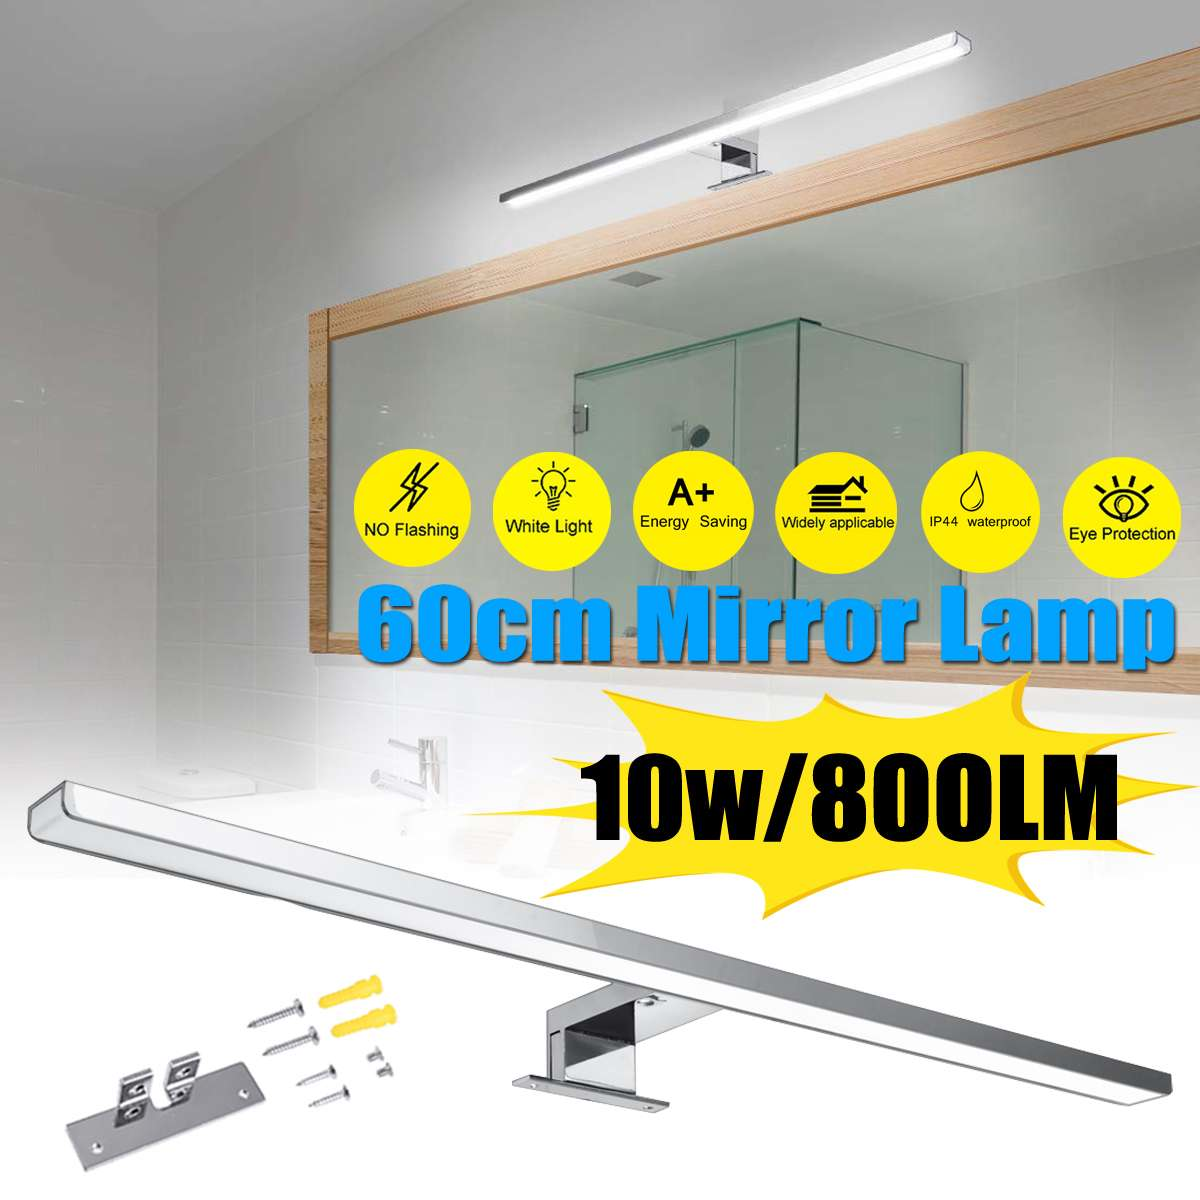 10W 800LM Waterproof Aluminum Lighting Indoor Led Mirror Wall Lamp White Wall Light 60cm Bathroom Restroom Mirror Makeup light